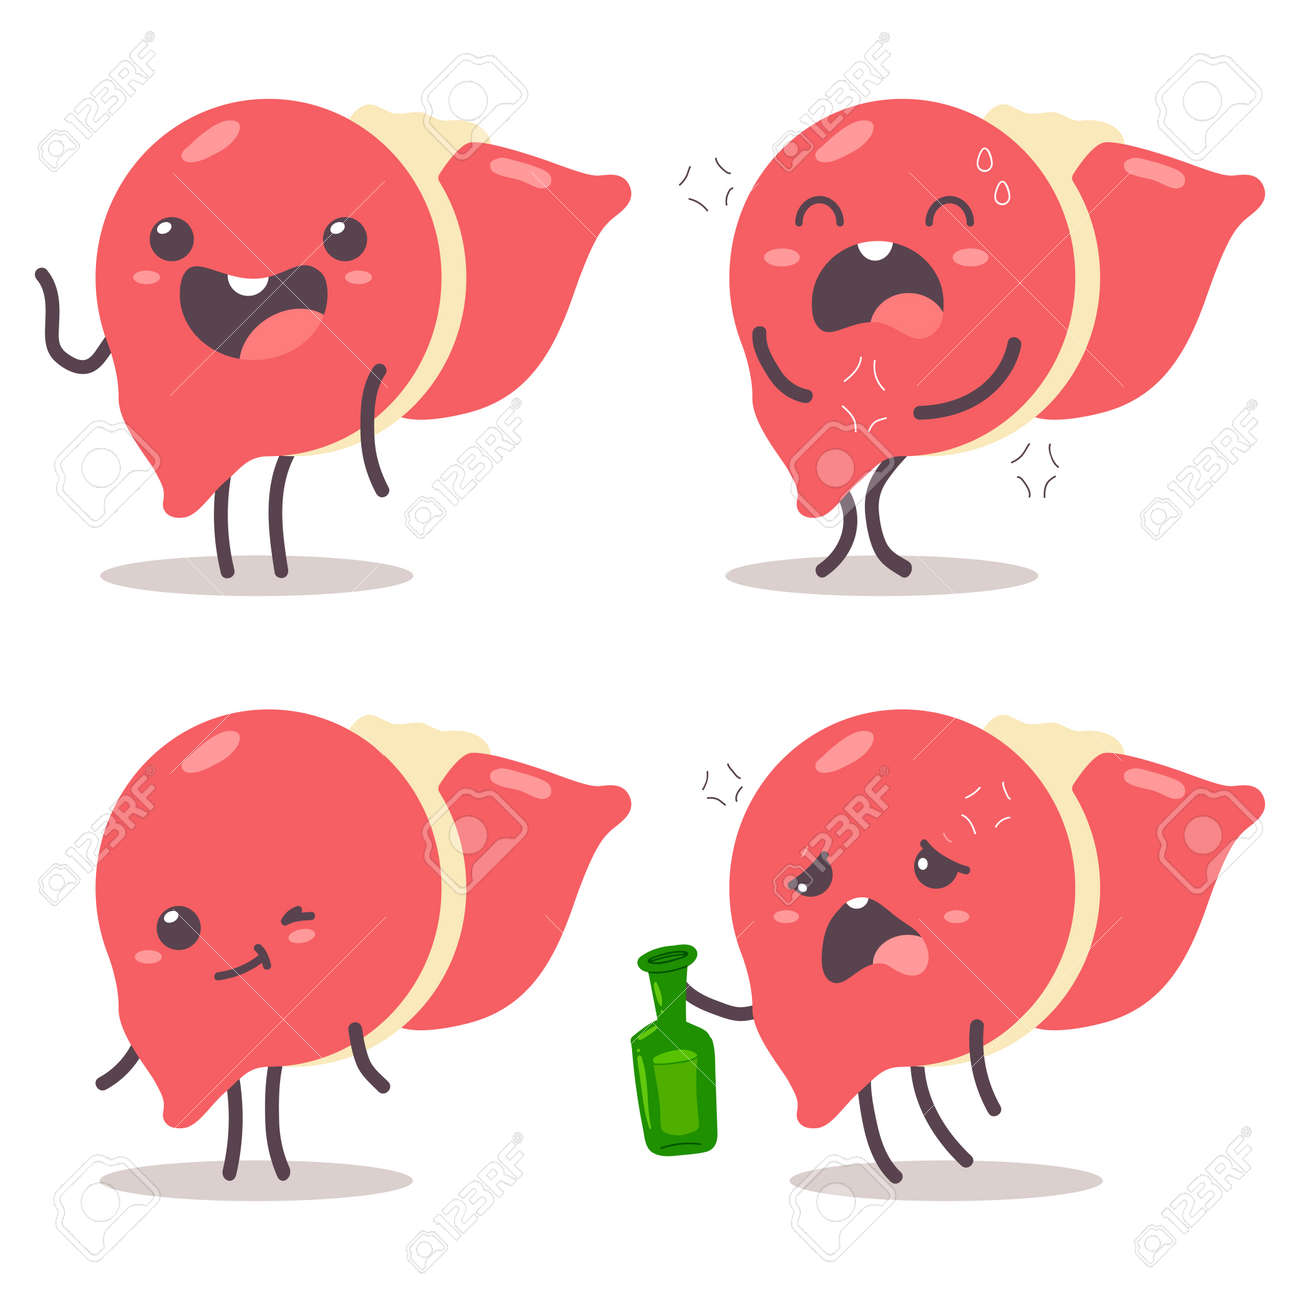 Cute liver vector cartoon characters set isolated on a white background. - 172749765